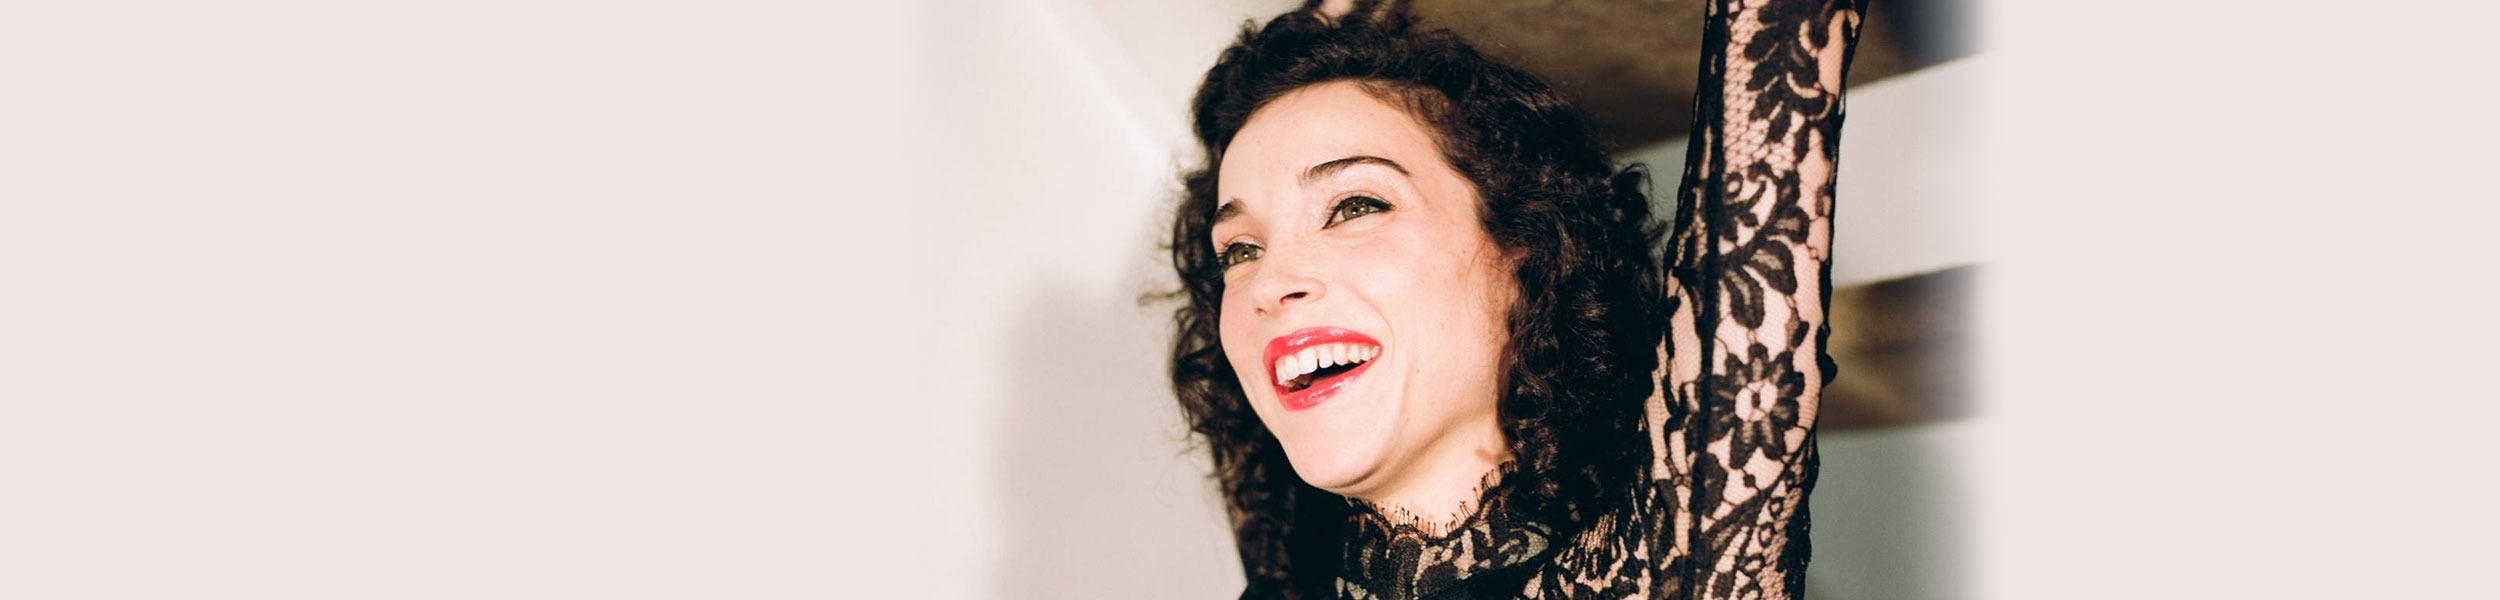 St. Vincent - St. Vincent New Album, Strange Mercy, Released Today